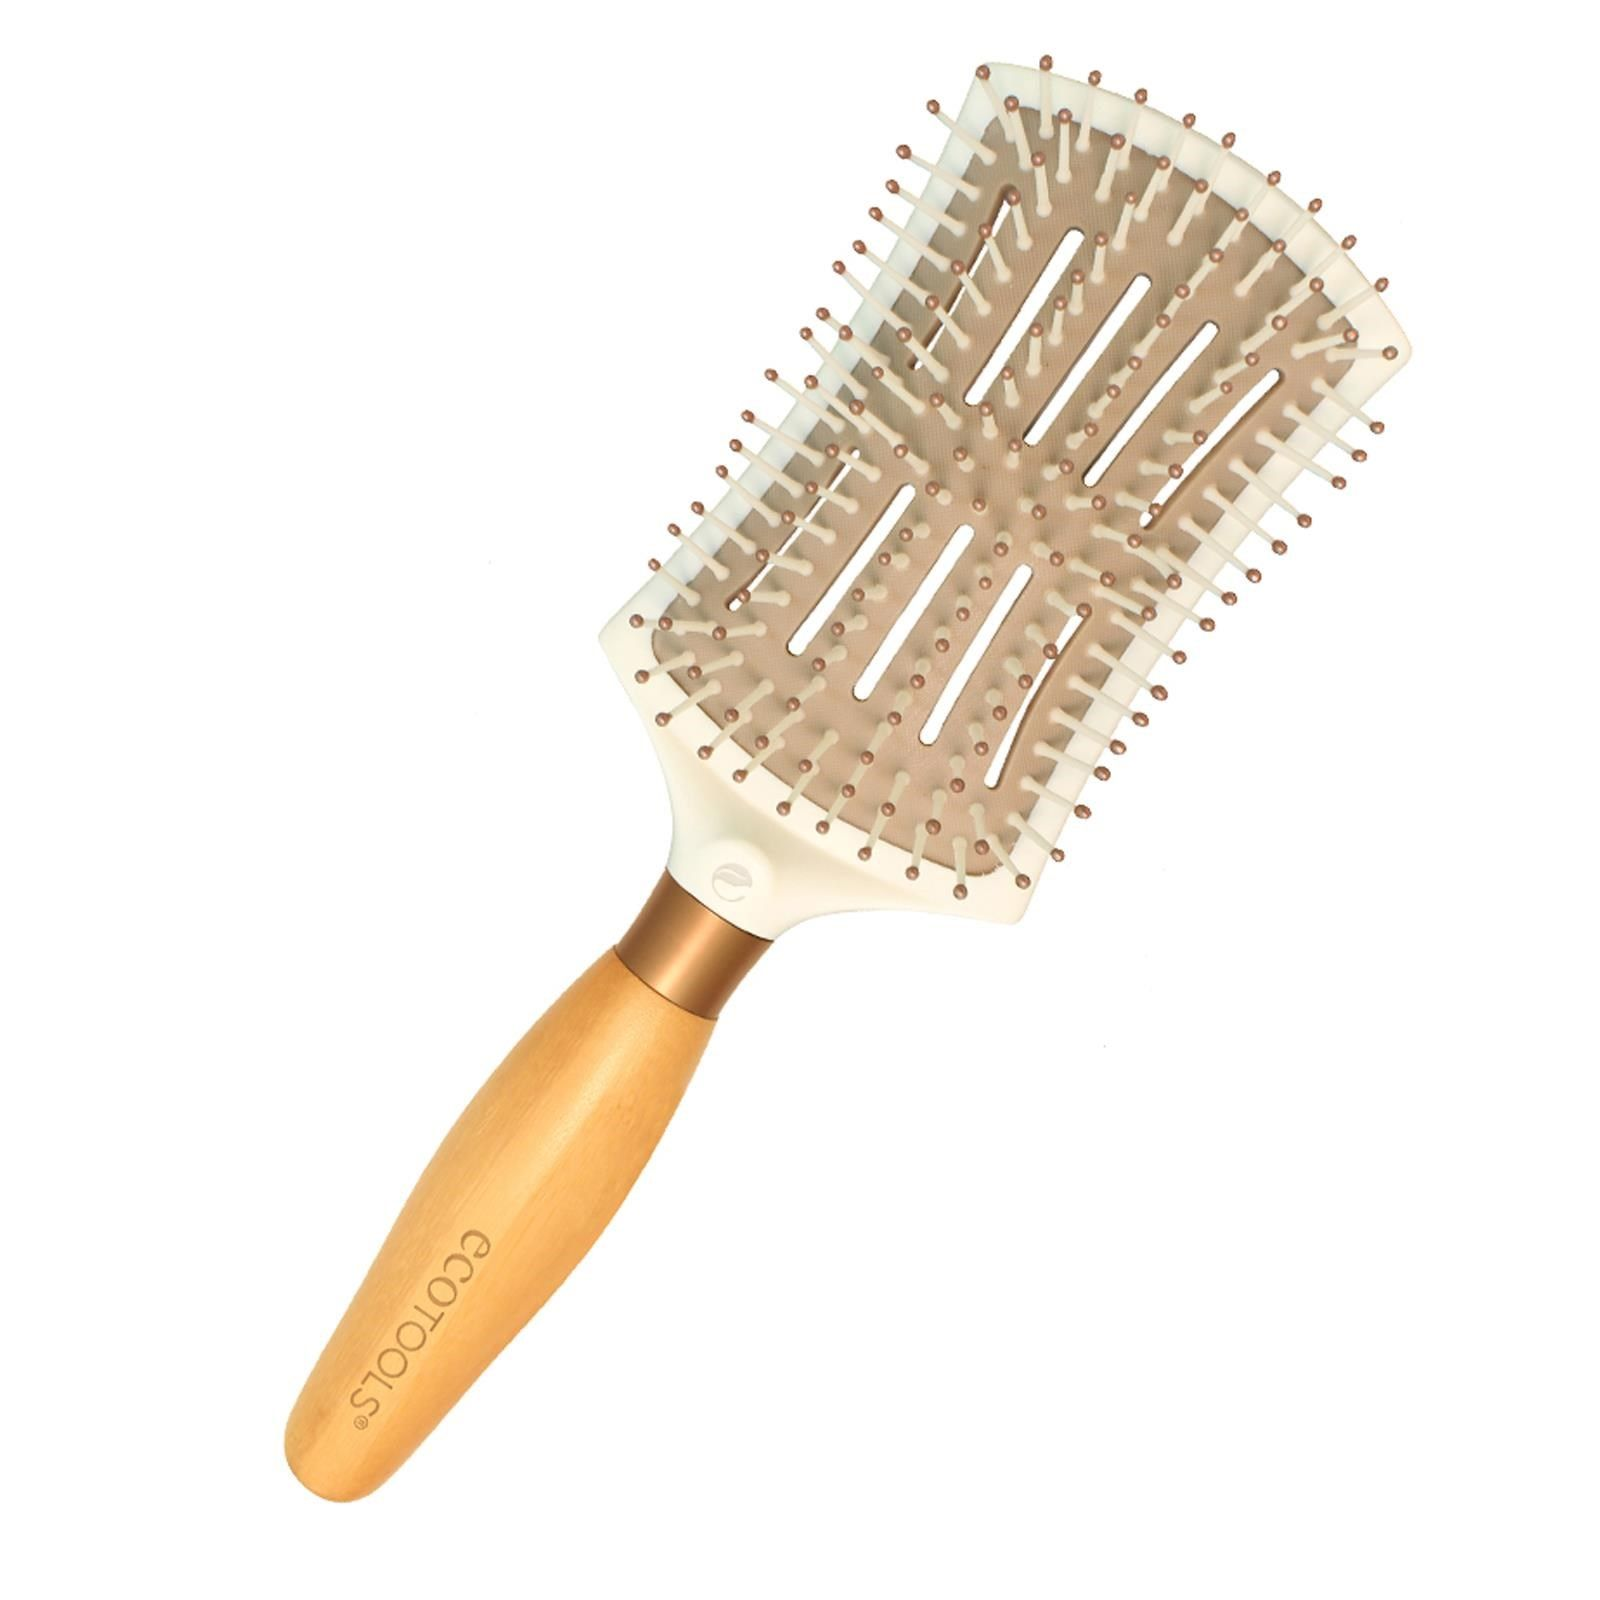 EcoTools, Smoothing Detangler Brush. Dries hair 20% Faster for Less Heat Damage. Smoothing Detangler with unique bristle system quickly smoothes as it gently detangles, leaving hair beautifully healthy.Ultra-lightweight for comfort smoothing and styling. Frizz and static-fighting design